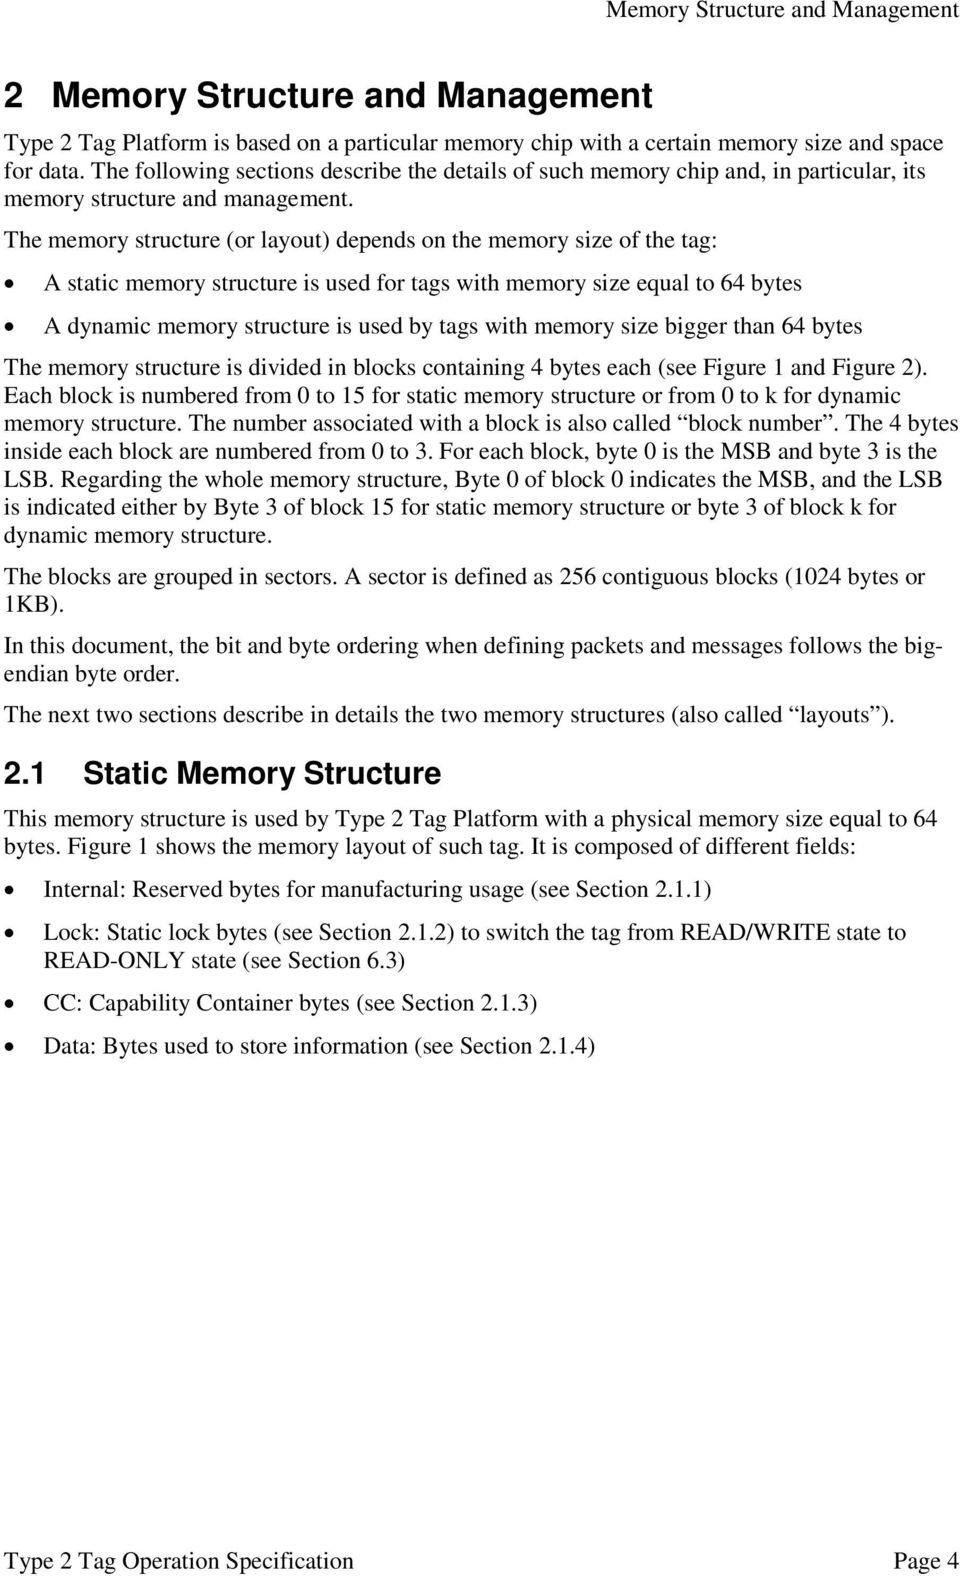 The memory structure (or layout) depends on the memory size of the tag: A static memory structure is used for tags with memory size equal to 64 bytes A dynamic memory structure is used by tags with